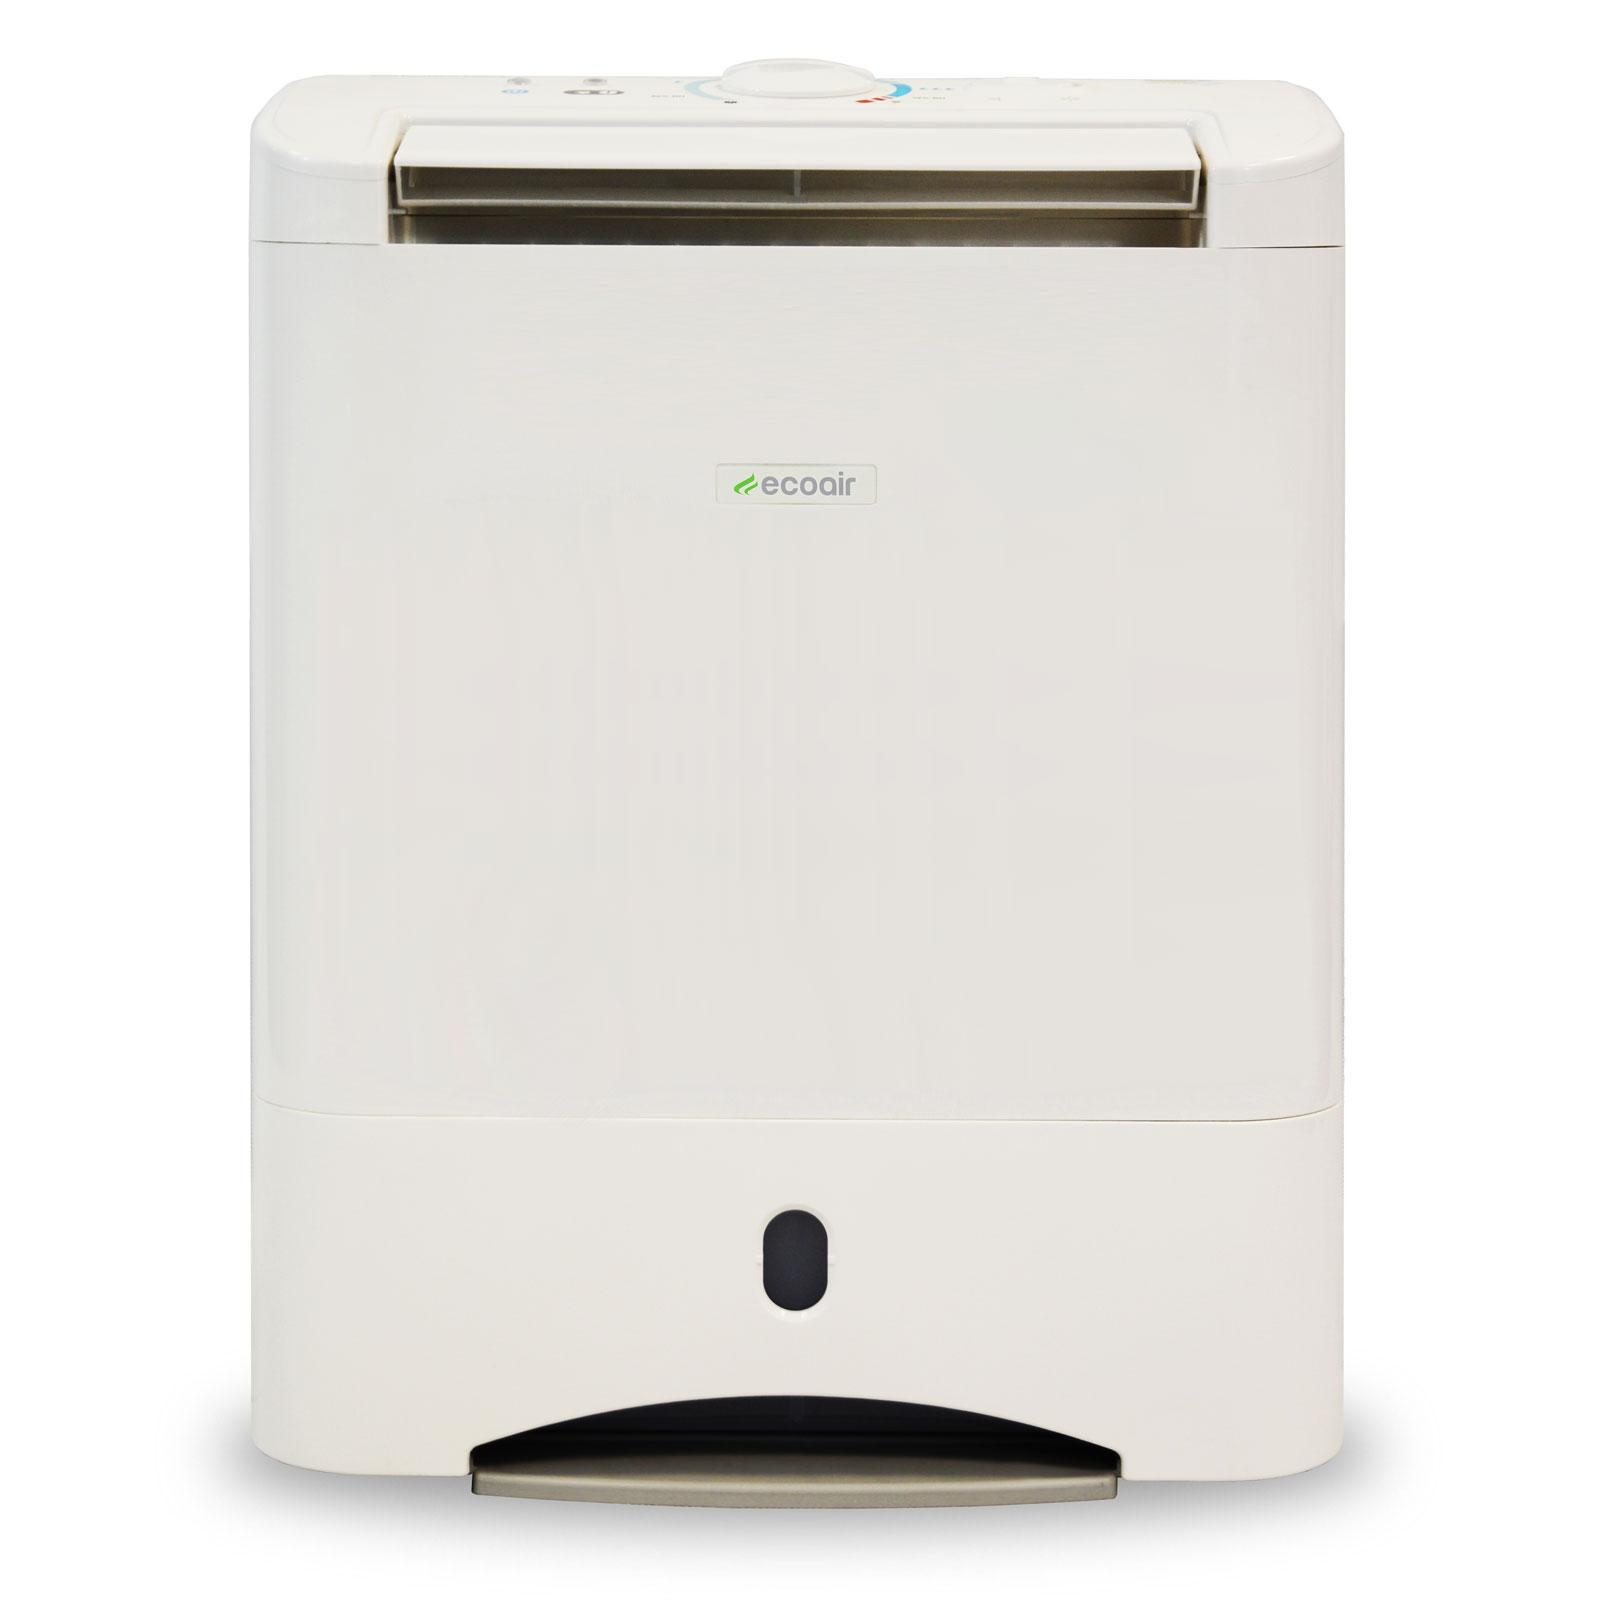 Simple Desiccant Dehumidifier 10 L: Amazon.co.uk: Kitchen & Home #559833